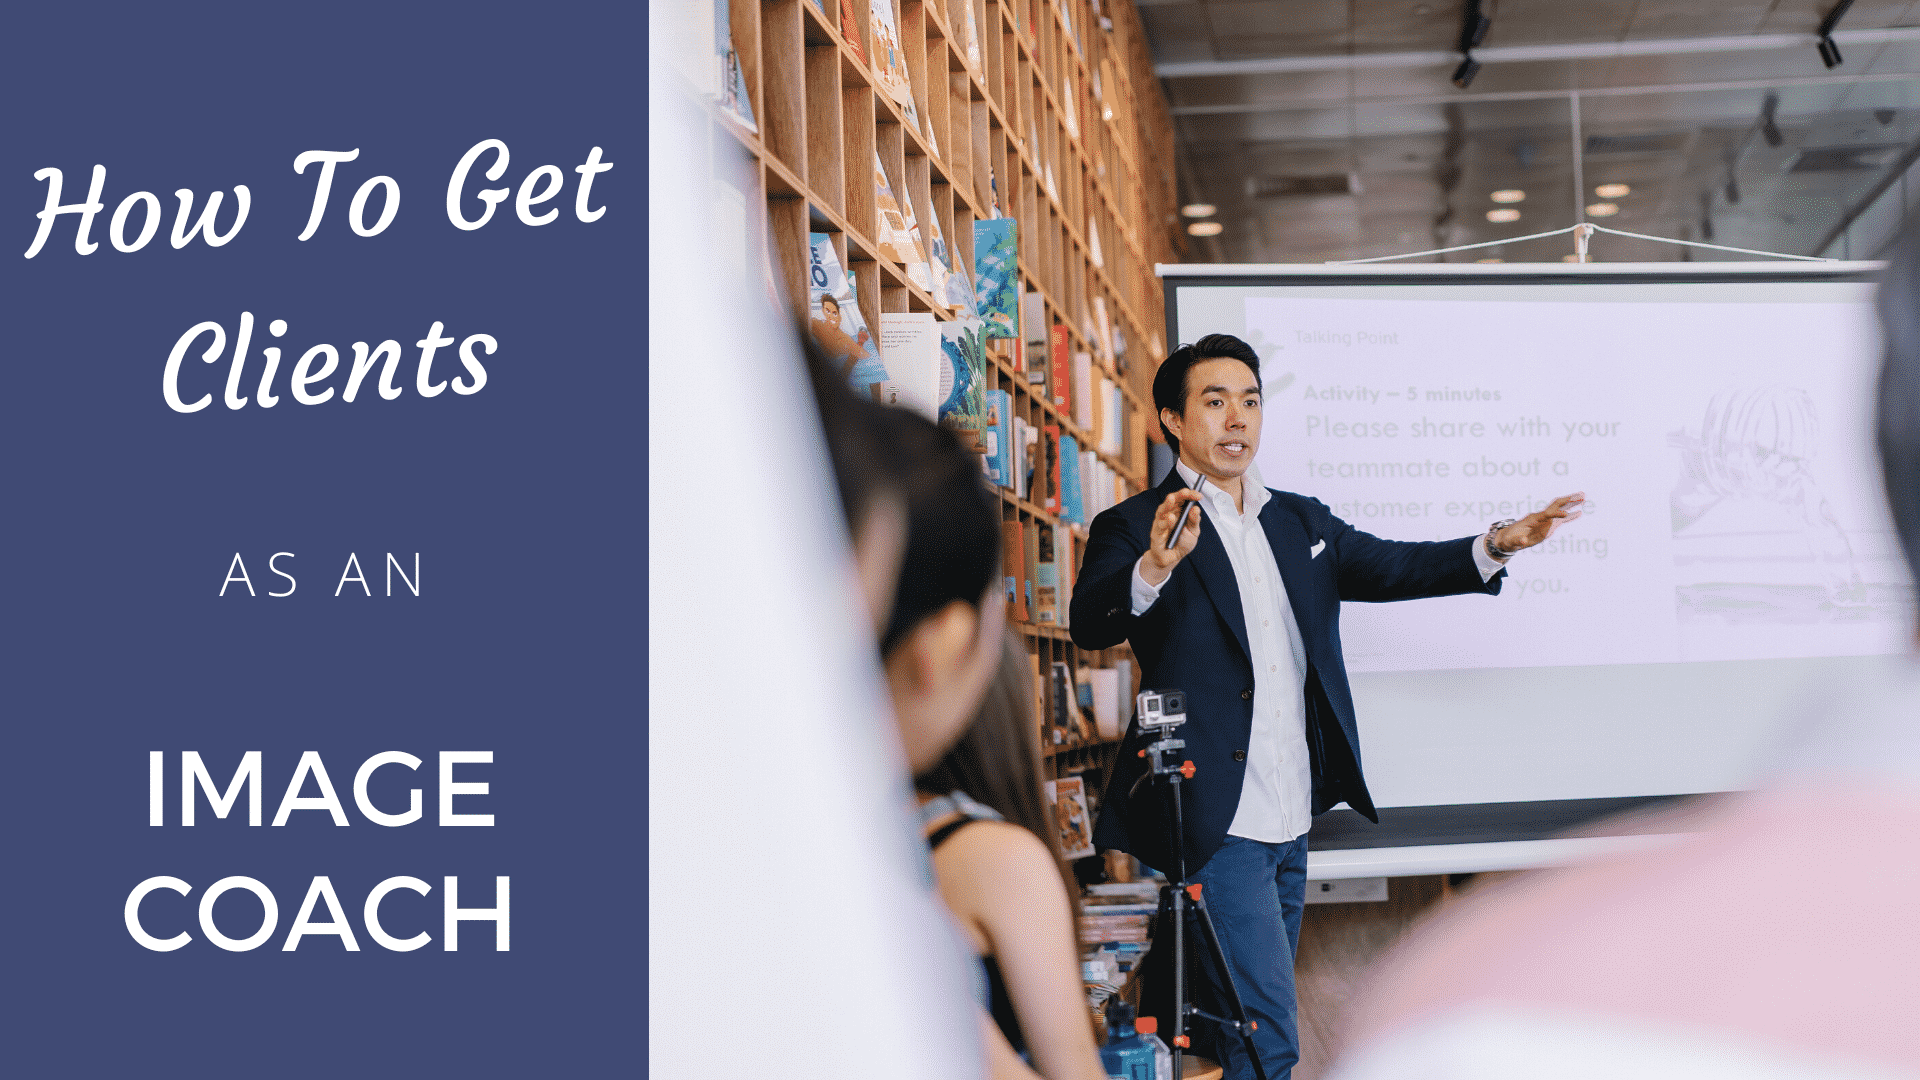 How to Get Clients as an Image Coach in 2020 image coach